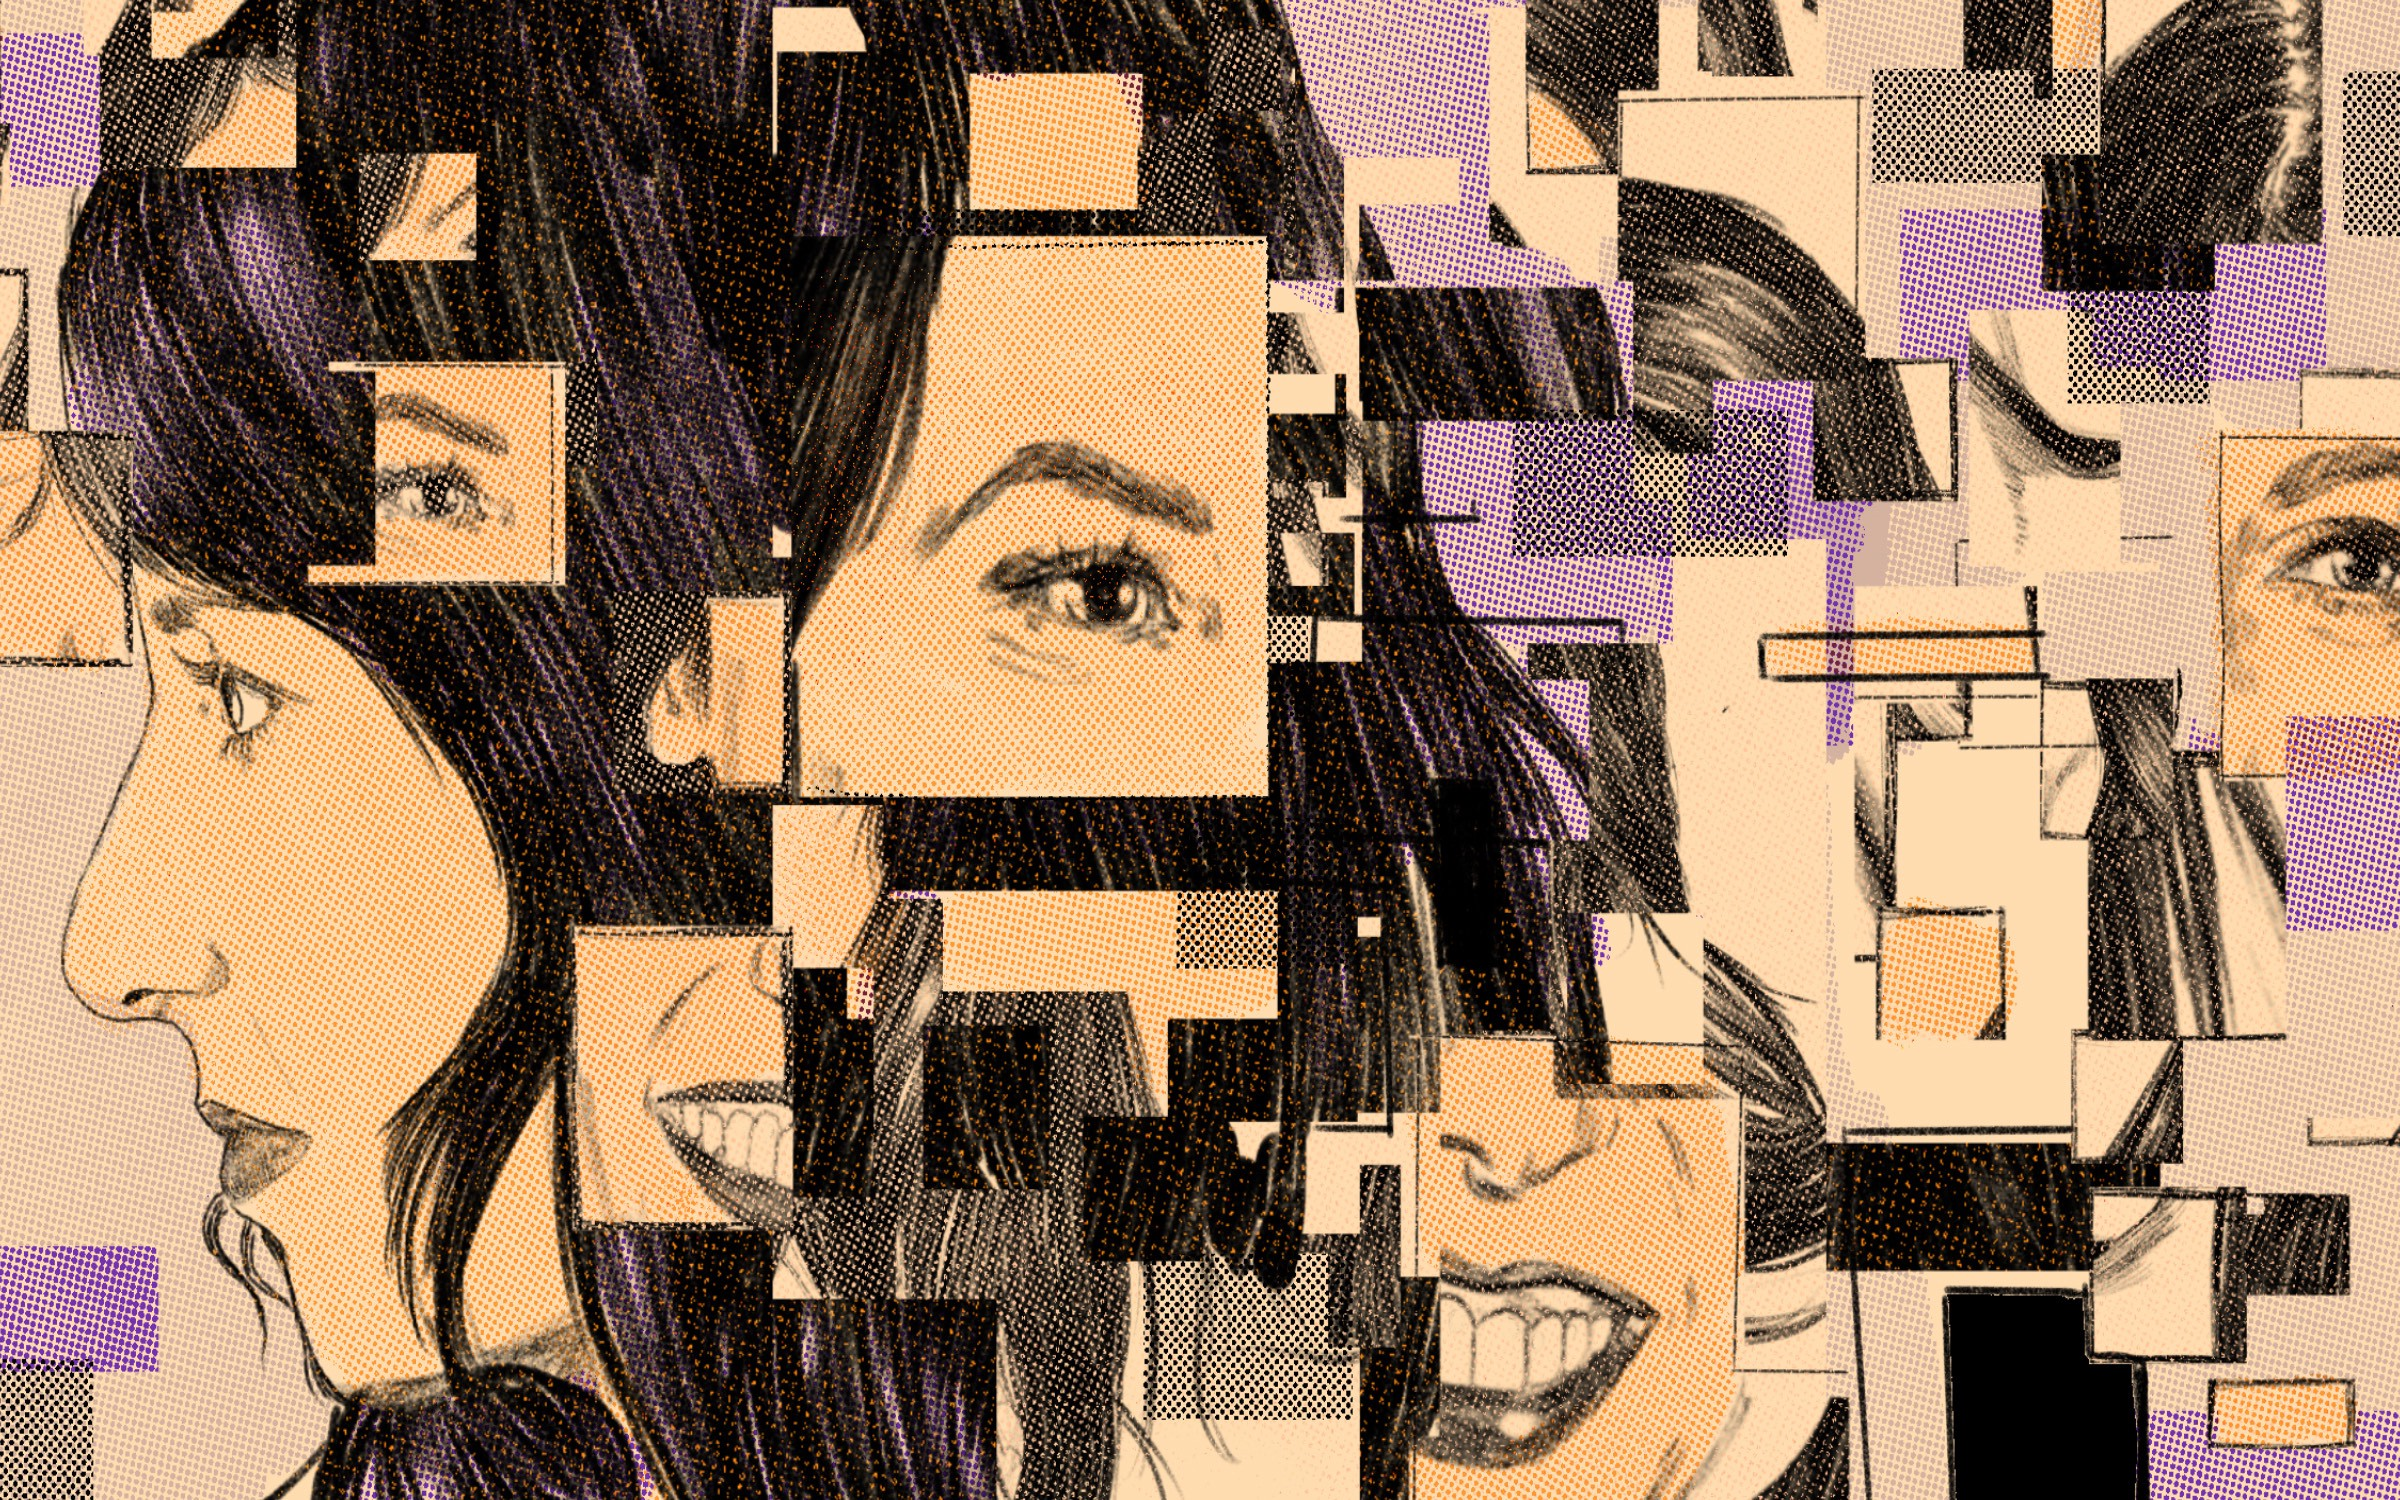 An illustrated collage of MacKenzie Bezos.